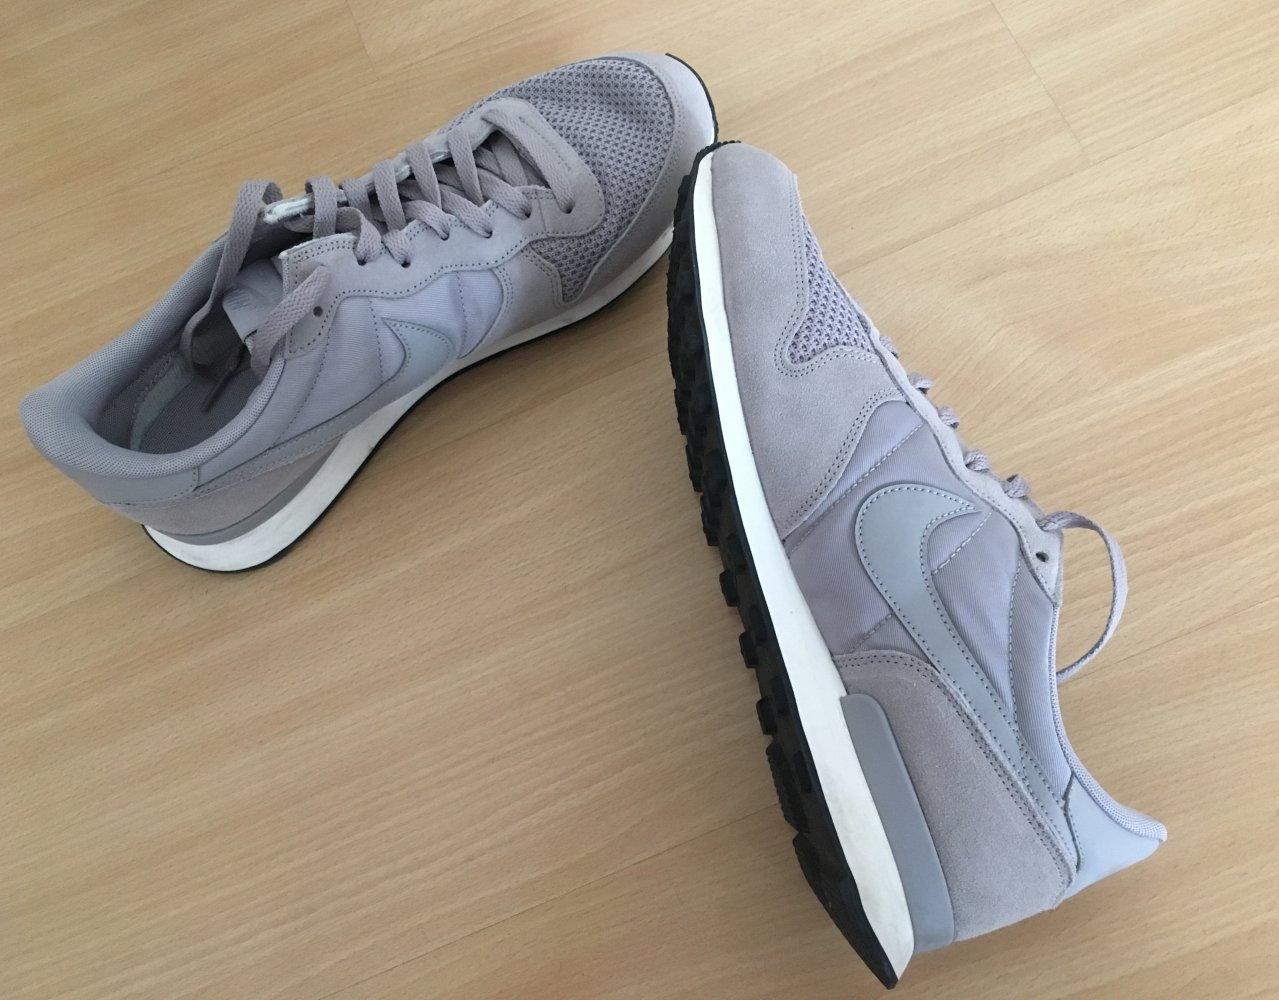 Nike Internationalist SE Herren Gr. 44,5 :: Kleiderkorb.de